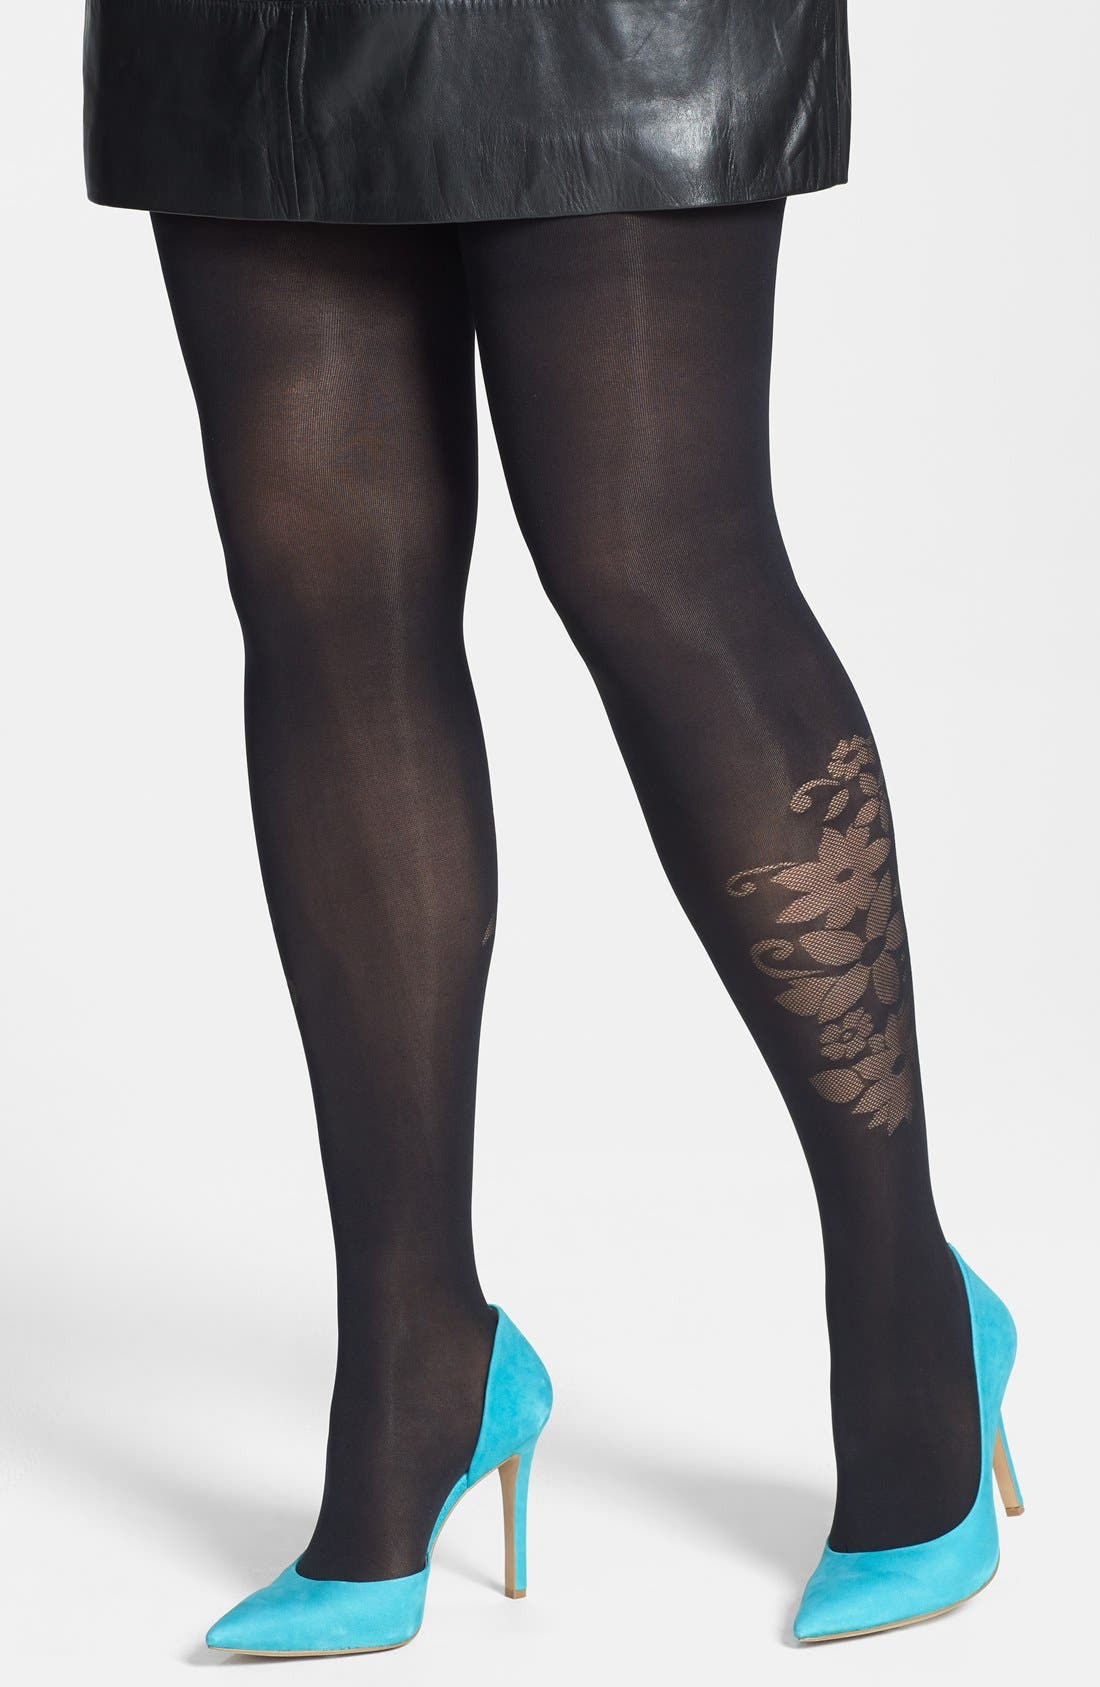 Main Image - Pretty Polly 'Curves - Flower' Tights (Plus Size)